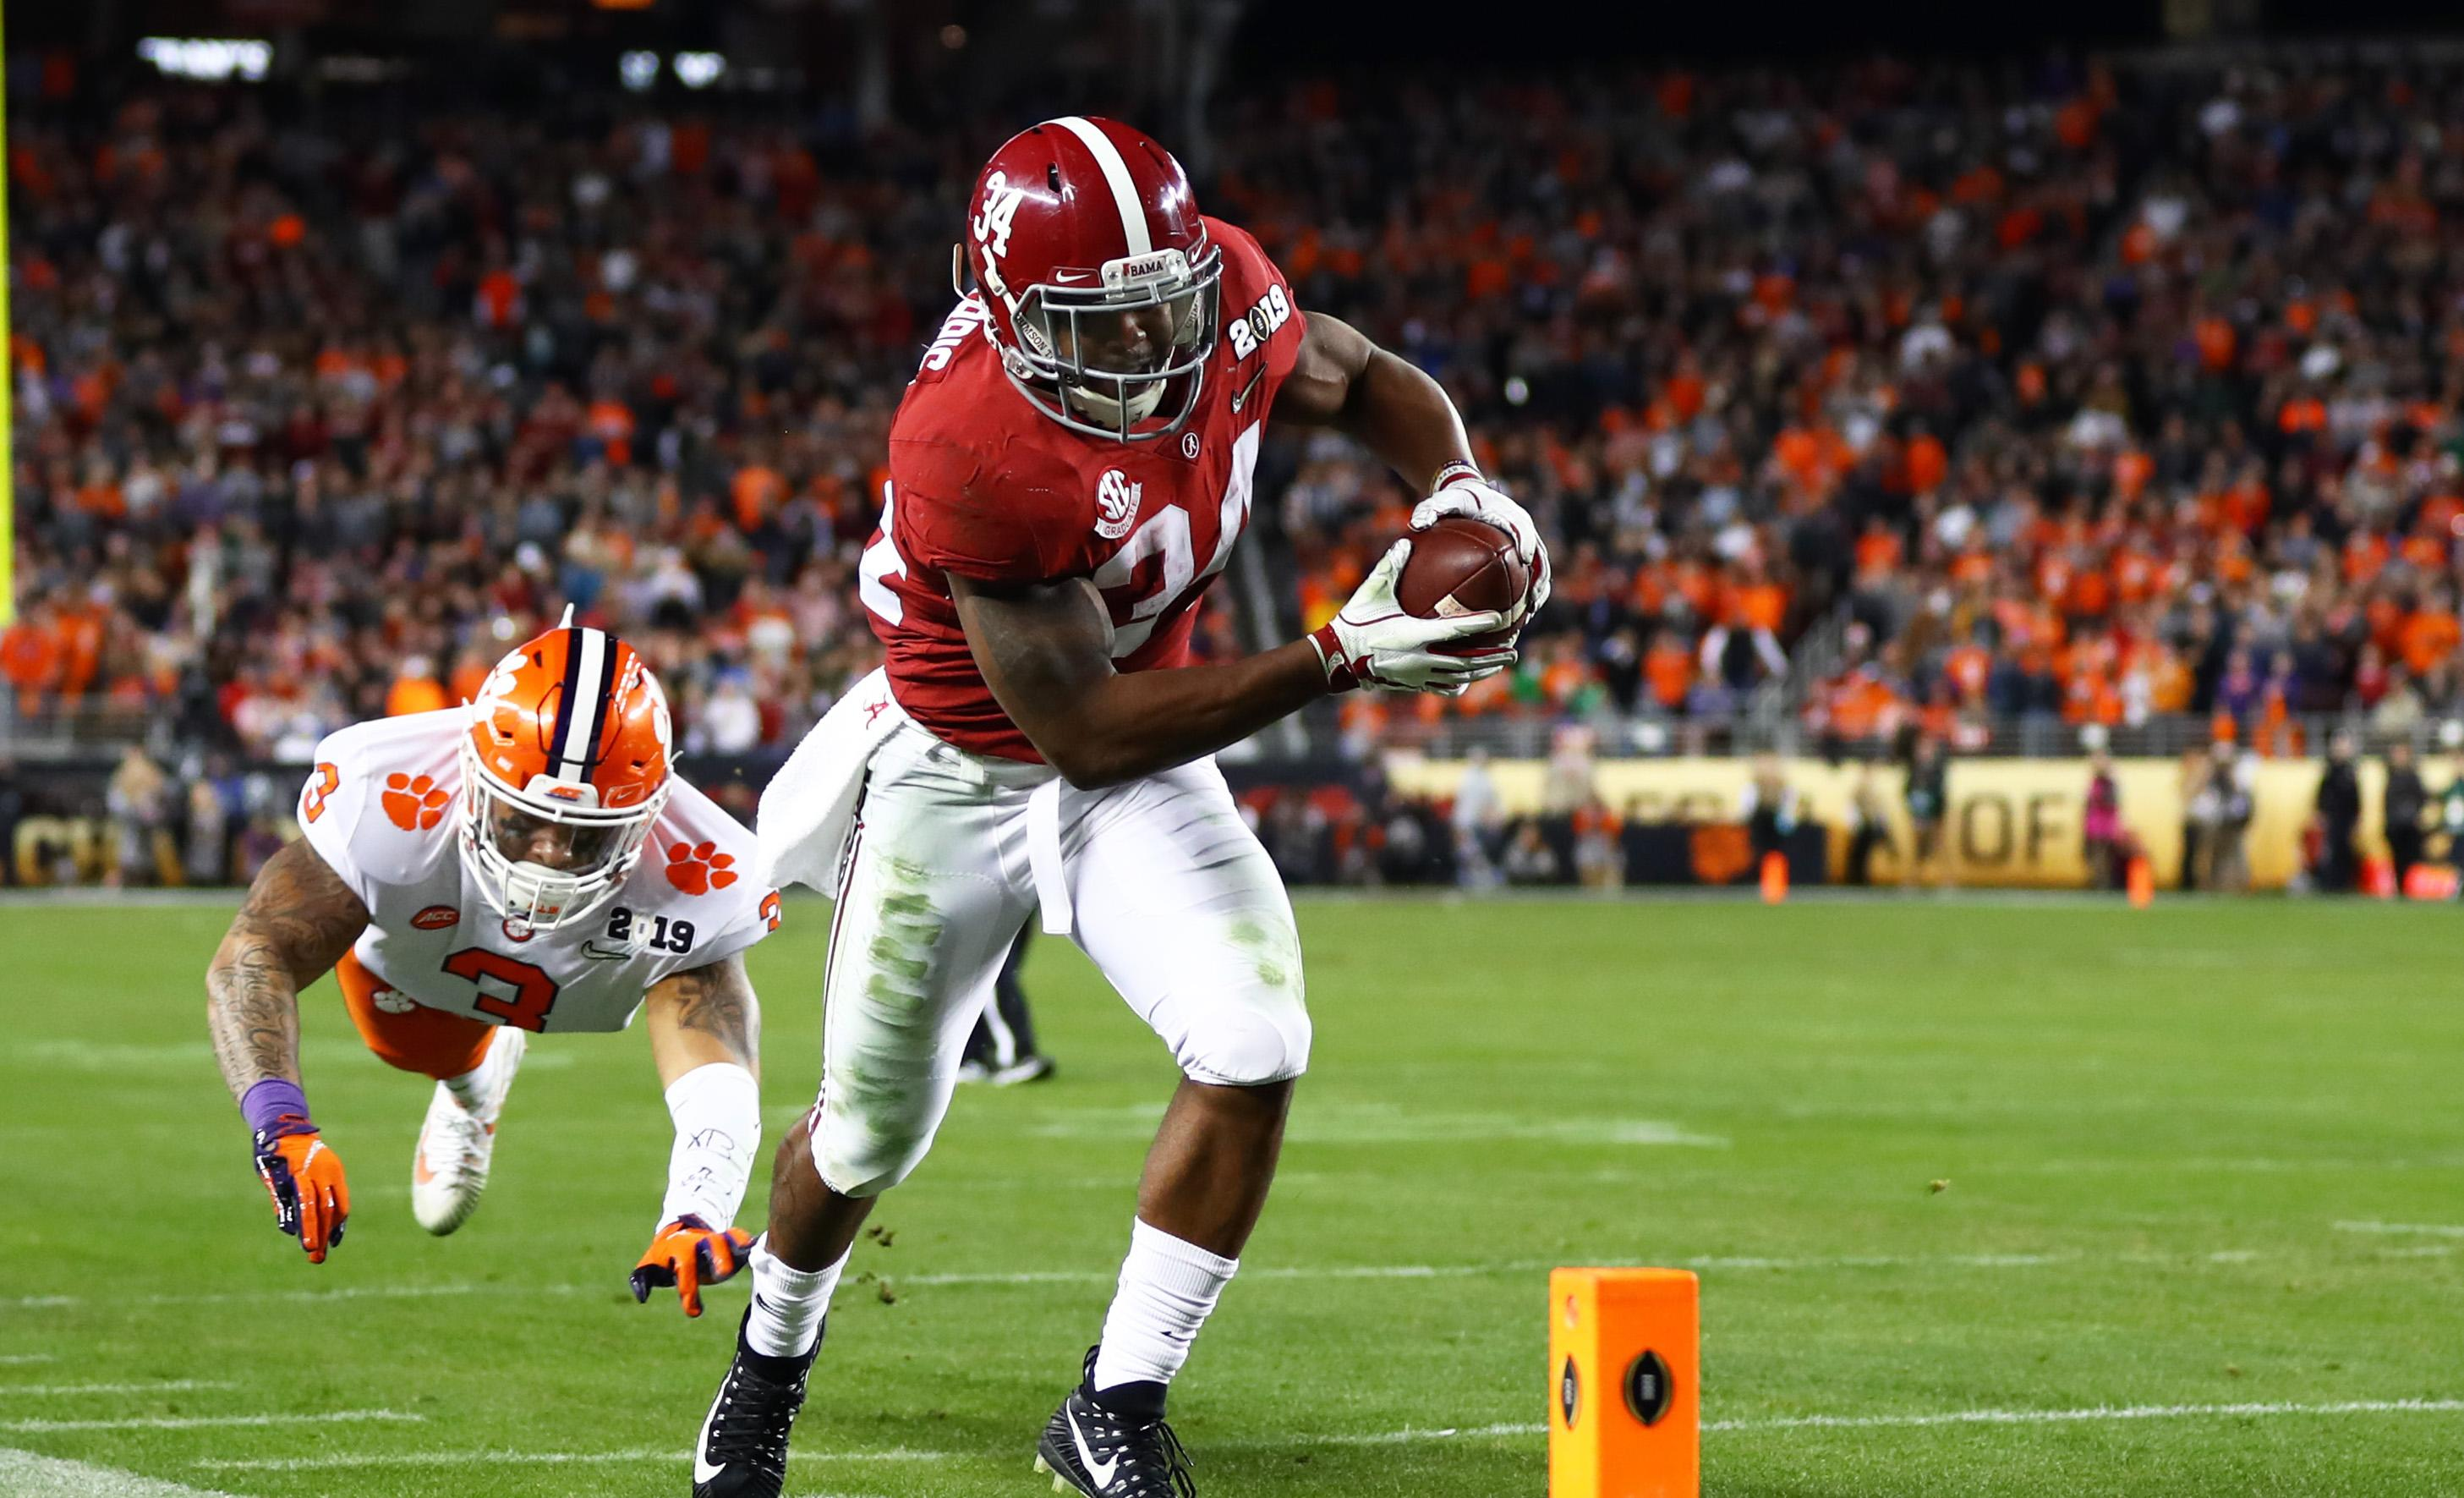 2019 Nfl Draft Patriots Select Alabama Rb Damien Harris With 87th Pick